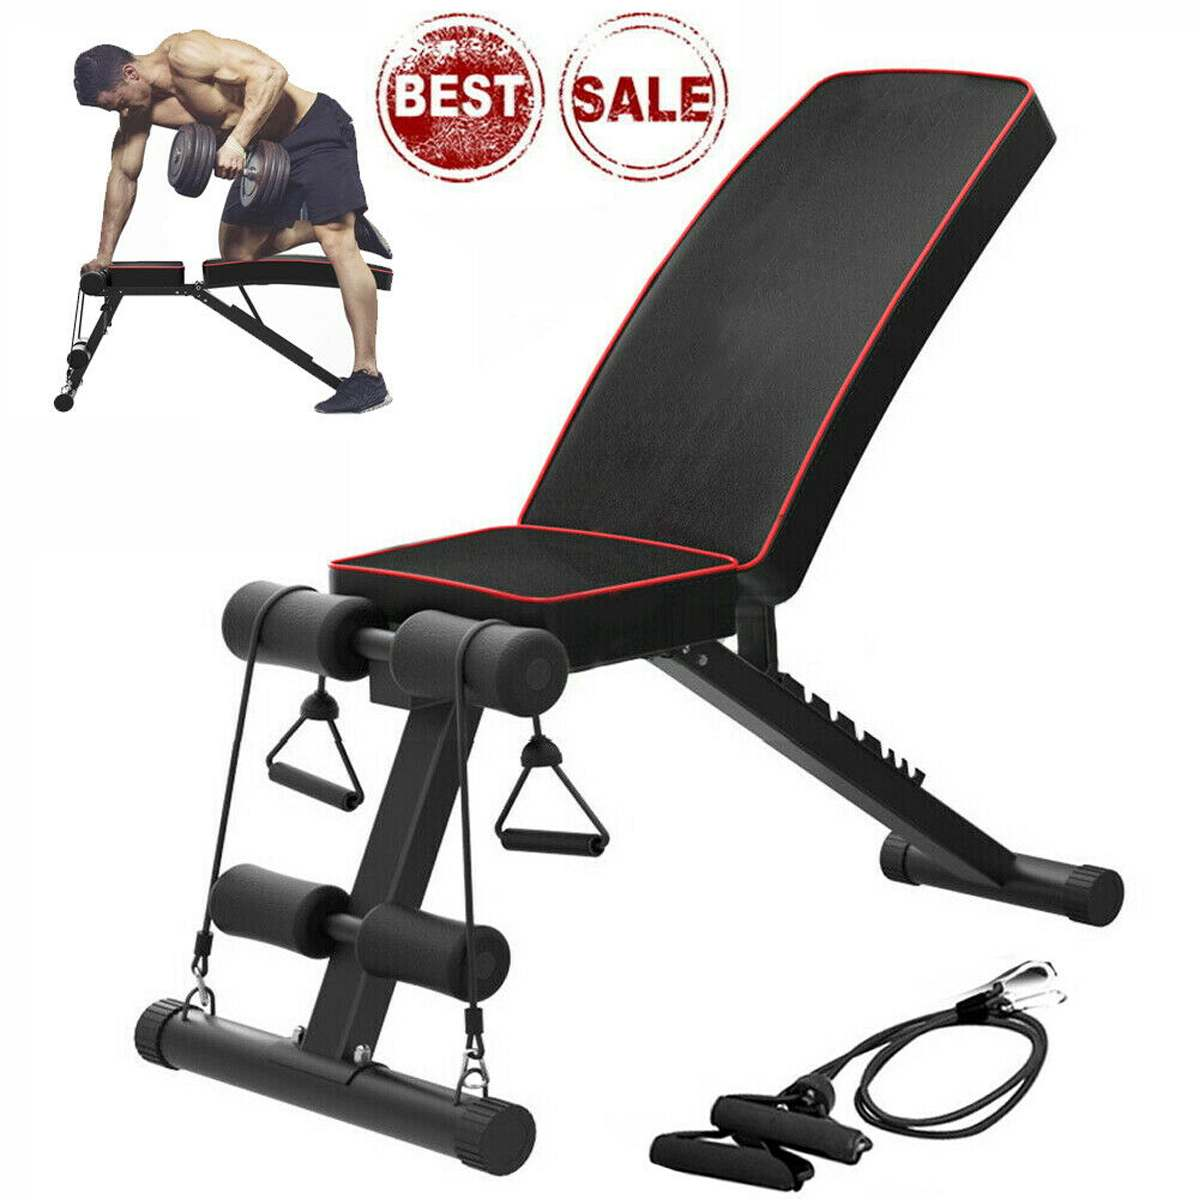 Permalink to NEW Household Fitness Workout Gym Exercise Training Equipment Indoor Fitness Foldable Fitness Stool Dumbbell Bench Sit Up Stool